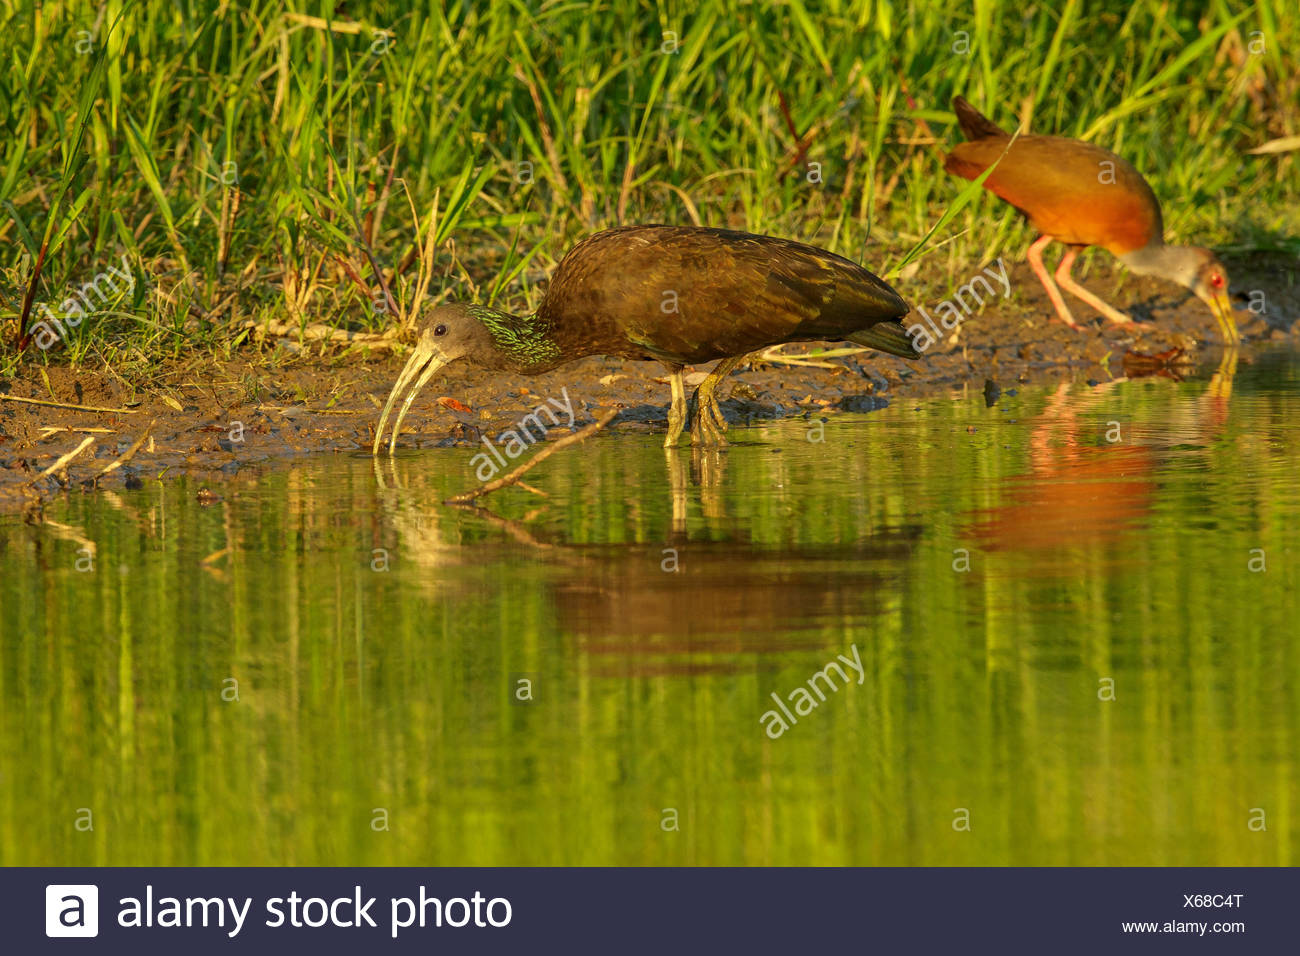 Green Ibis (Mesembrinibis cayennensis) feeding along the shore of an oxbow lake in Manu National Park, Peru. - Stock Image